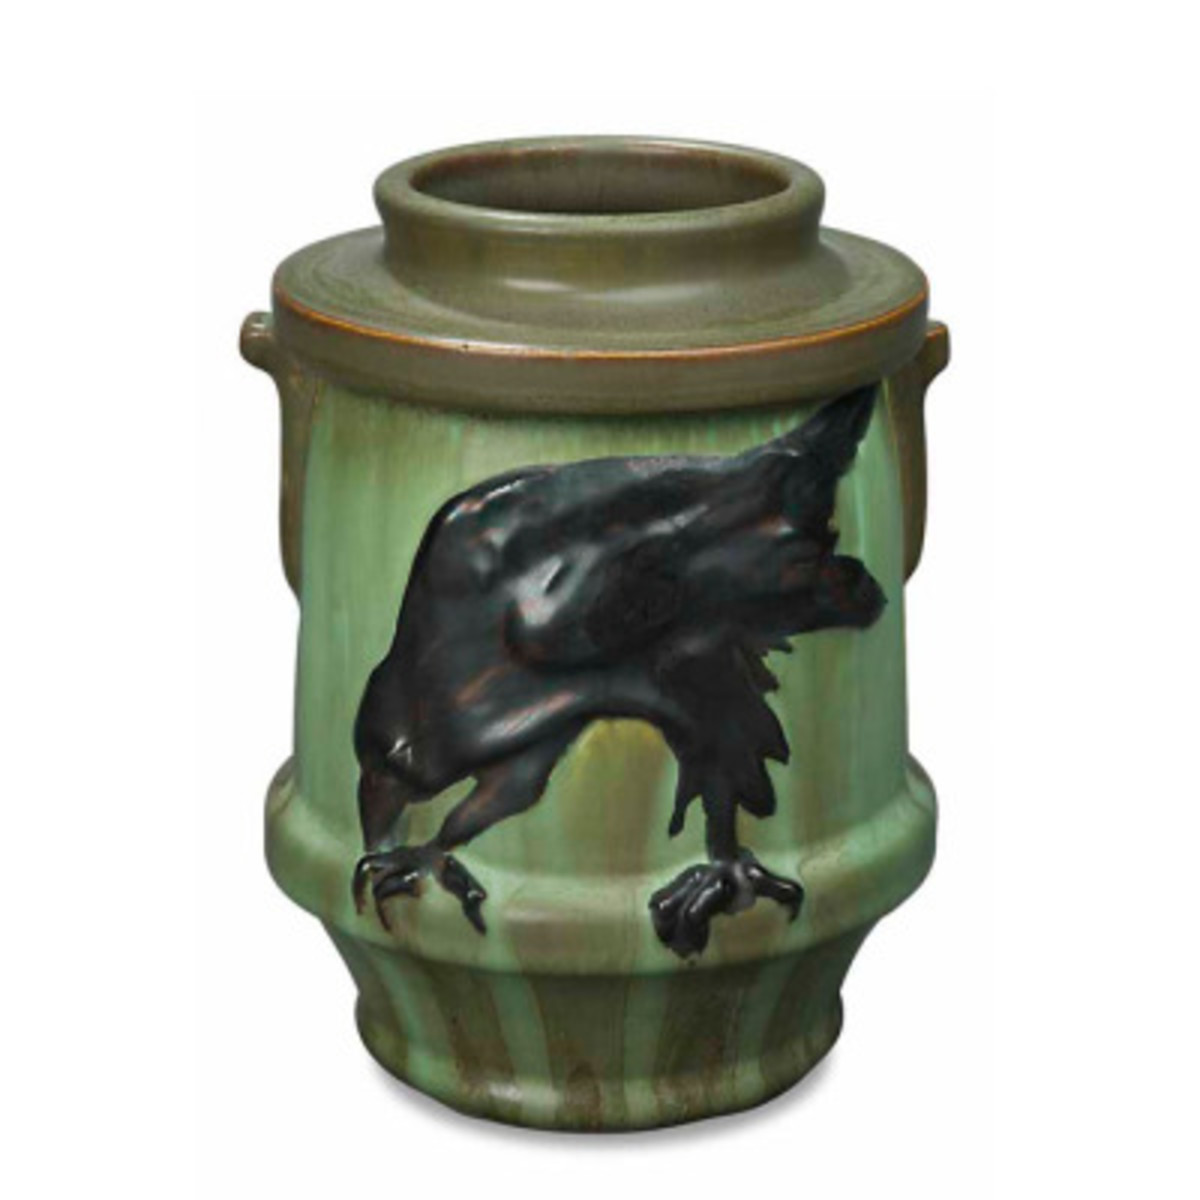 'The Messenger' gothic-feeling vase